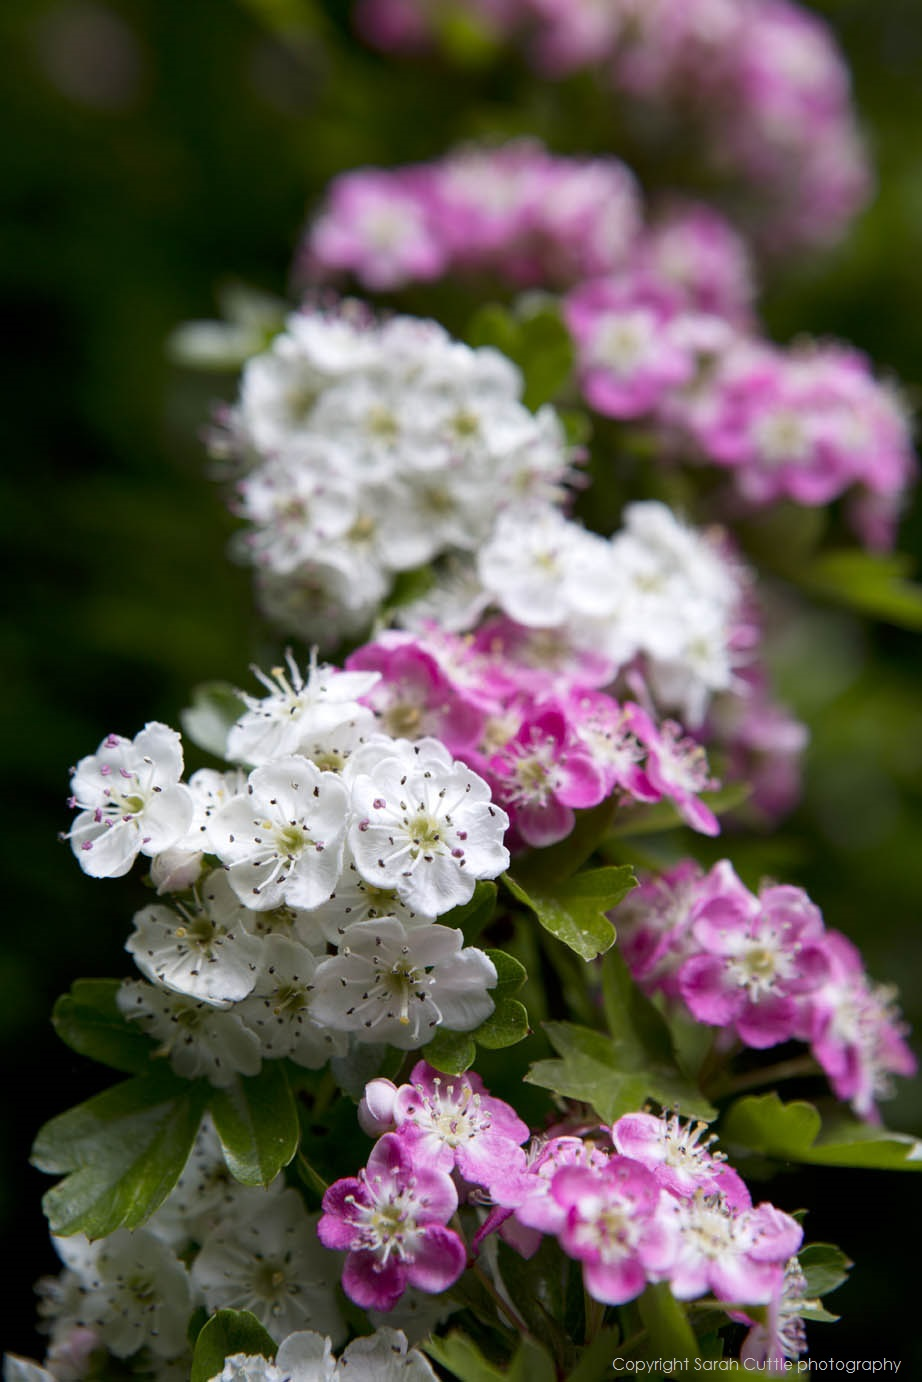 Common hawthorn flowers of a cultivated pink shrub and a wild white shrub growing entwined.